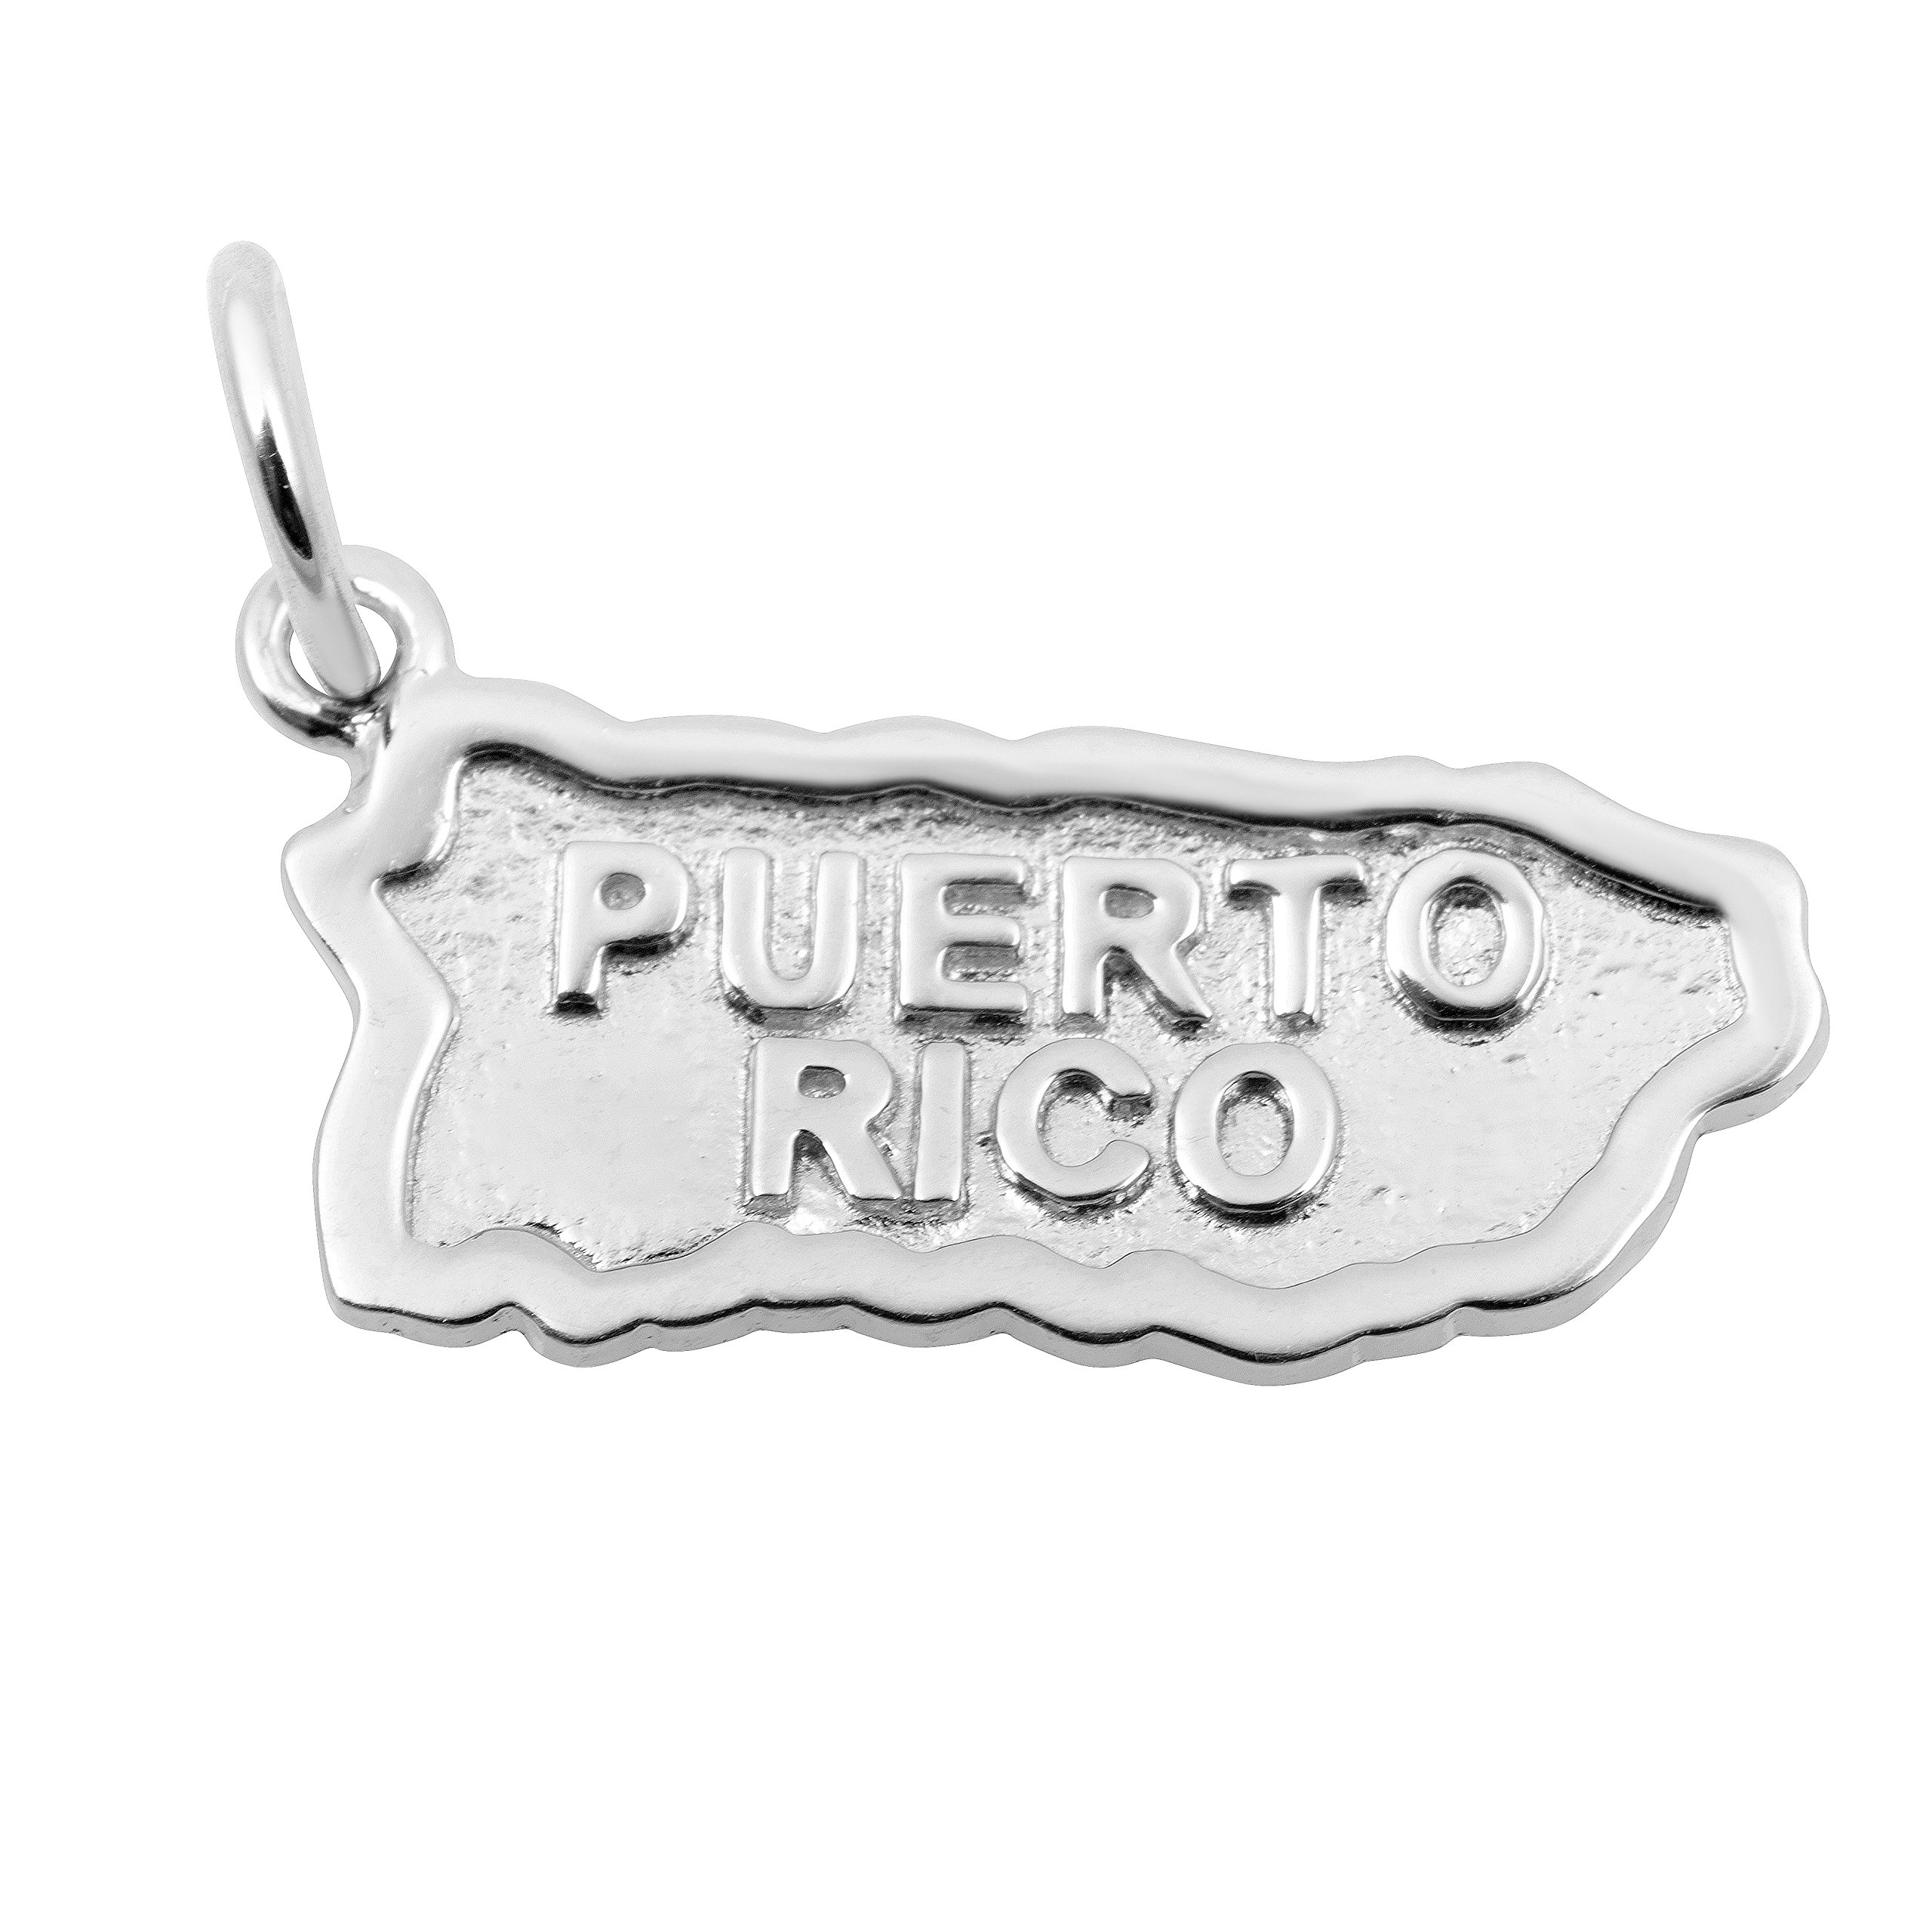 Necklace & Bracelet Charms – Travel & Places Themed Sterling Silver Jewelry by Silver on the Rocks